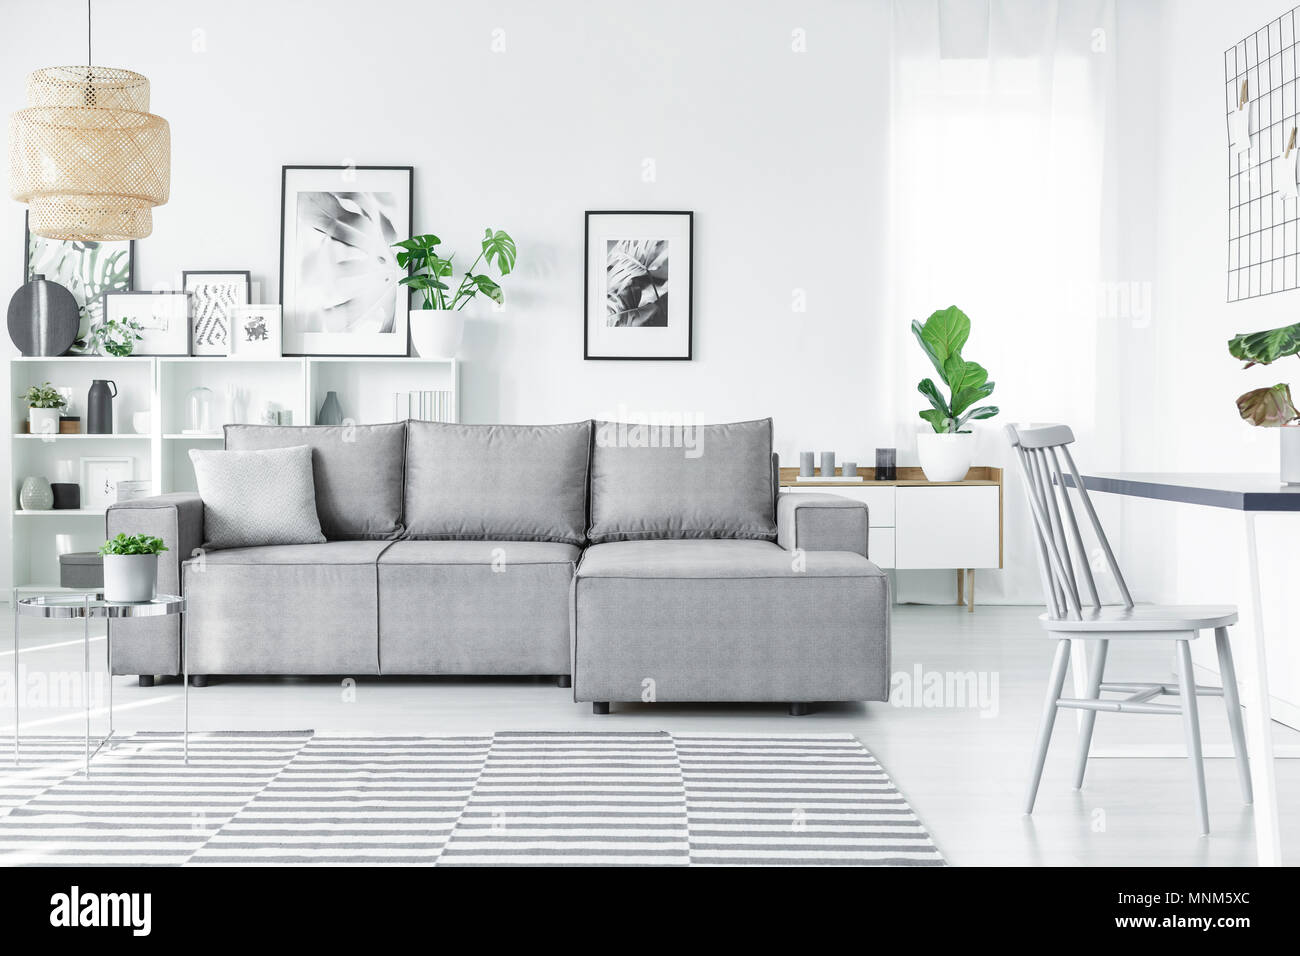 Scandinavian living room interior with a comfy corner sofa, paintings, plants and striped carpet - Stock Image